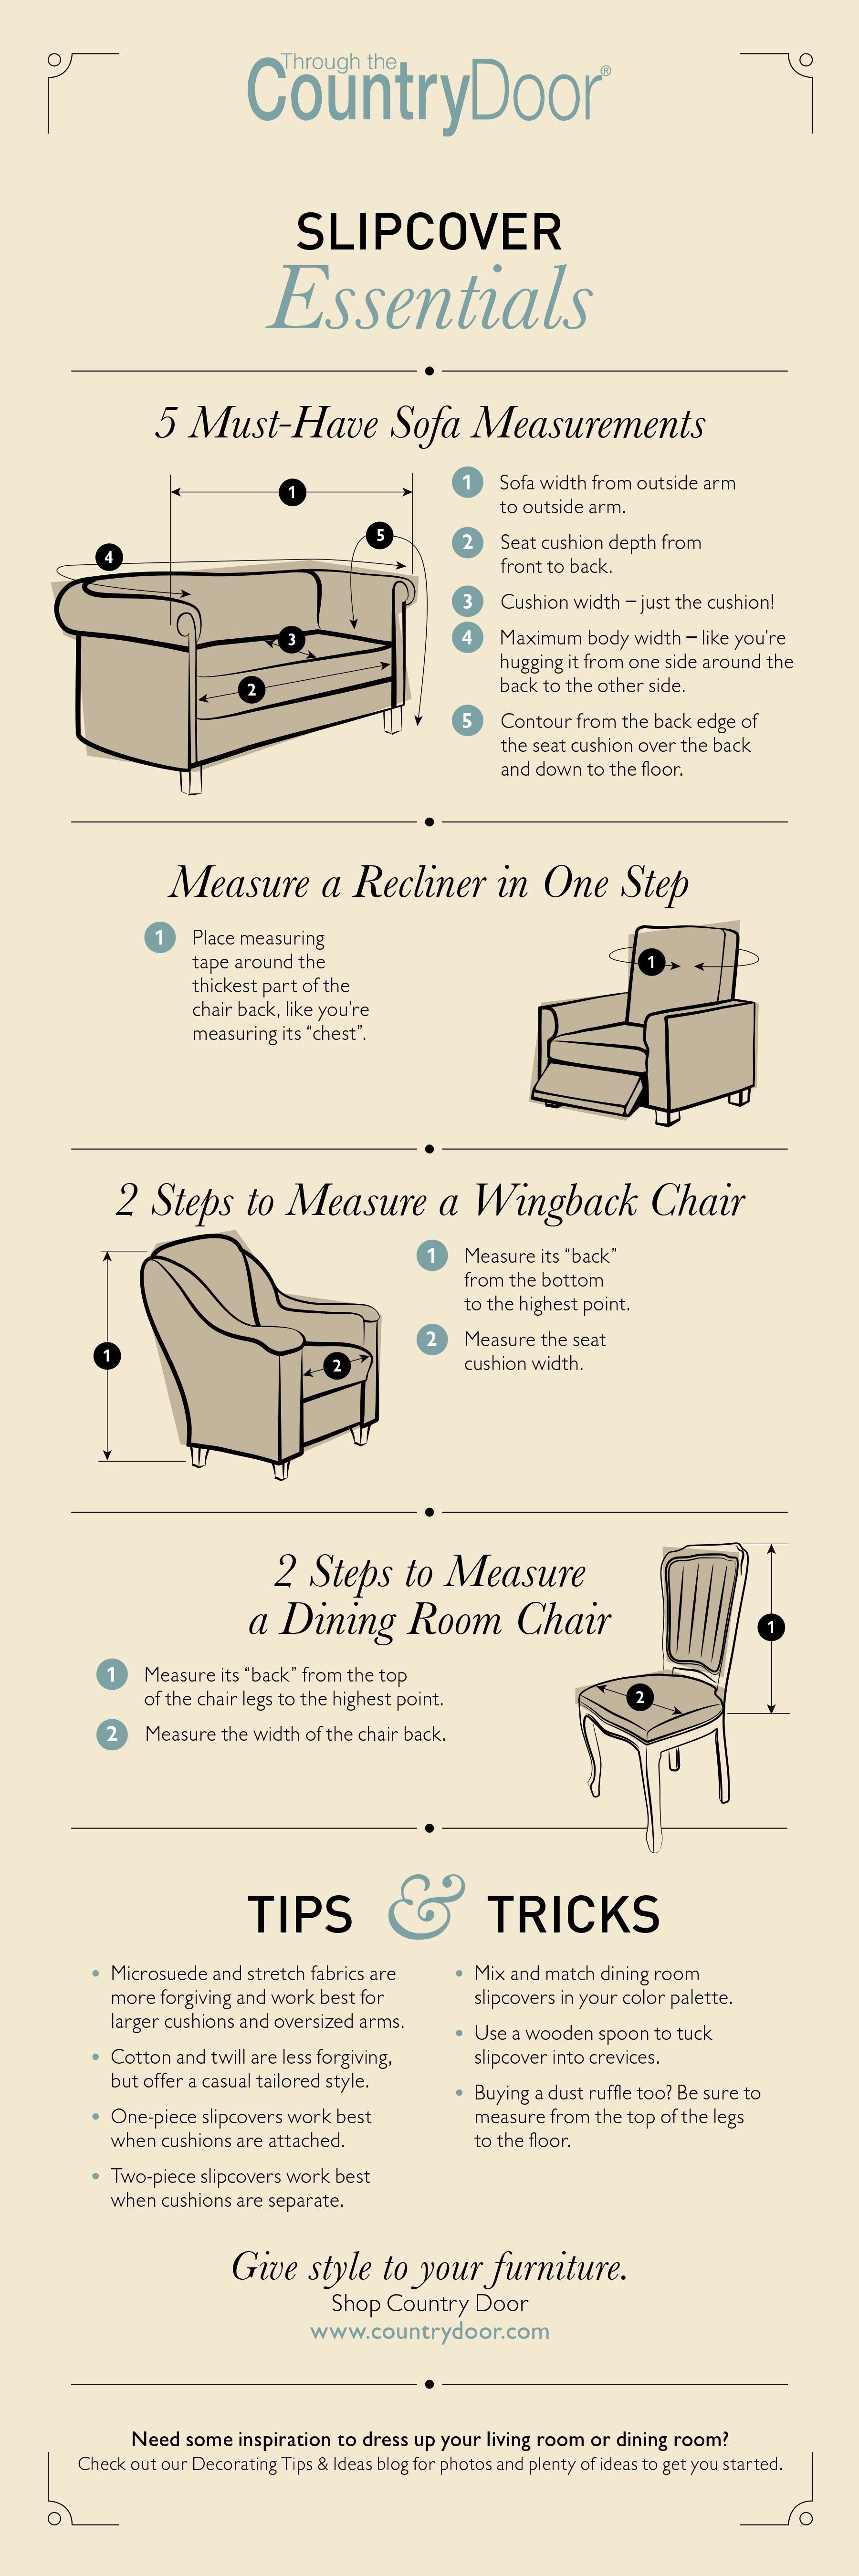 How To Measure Slipcovers Slipcovers Slip Covers Couch